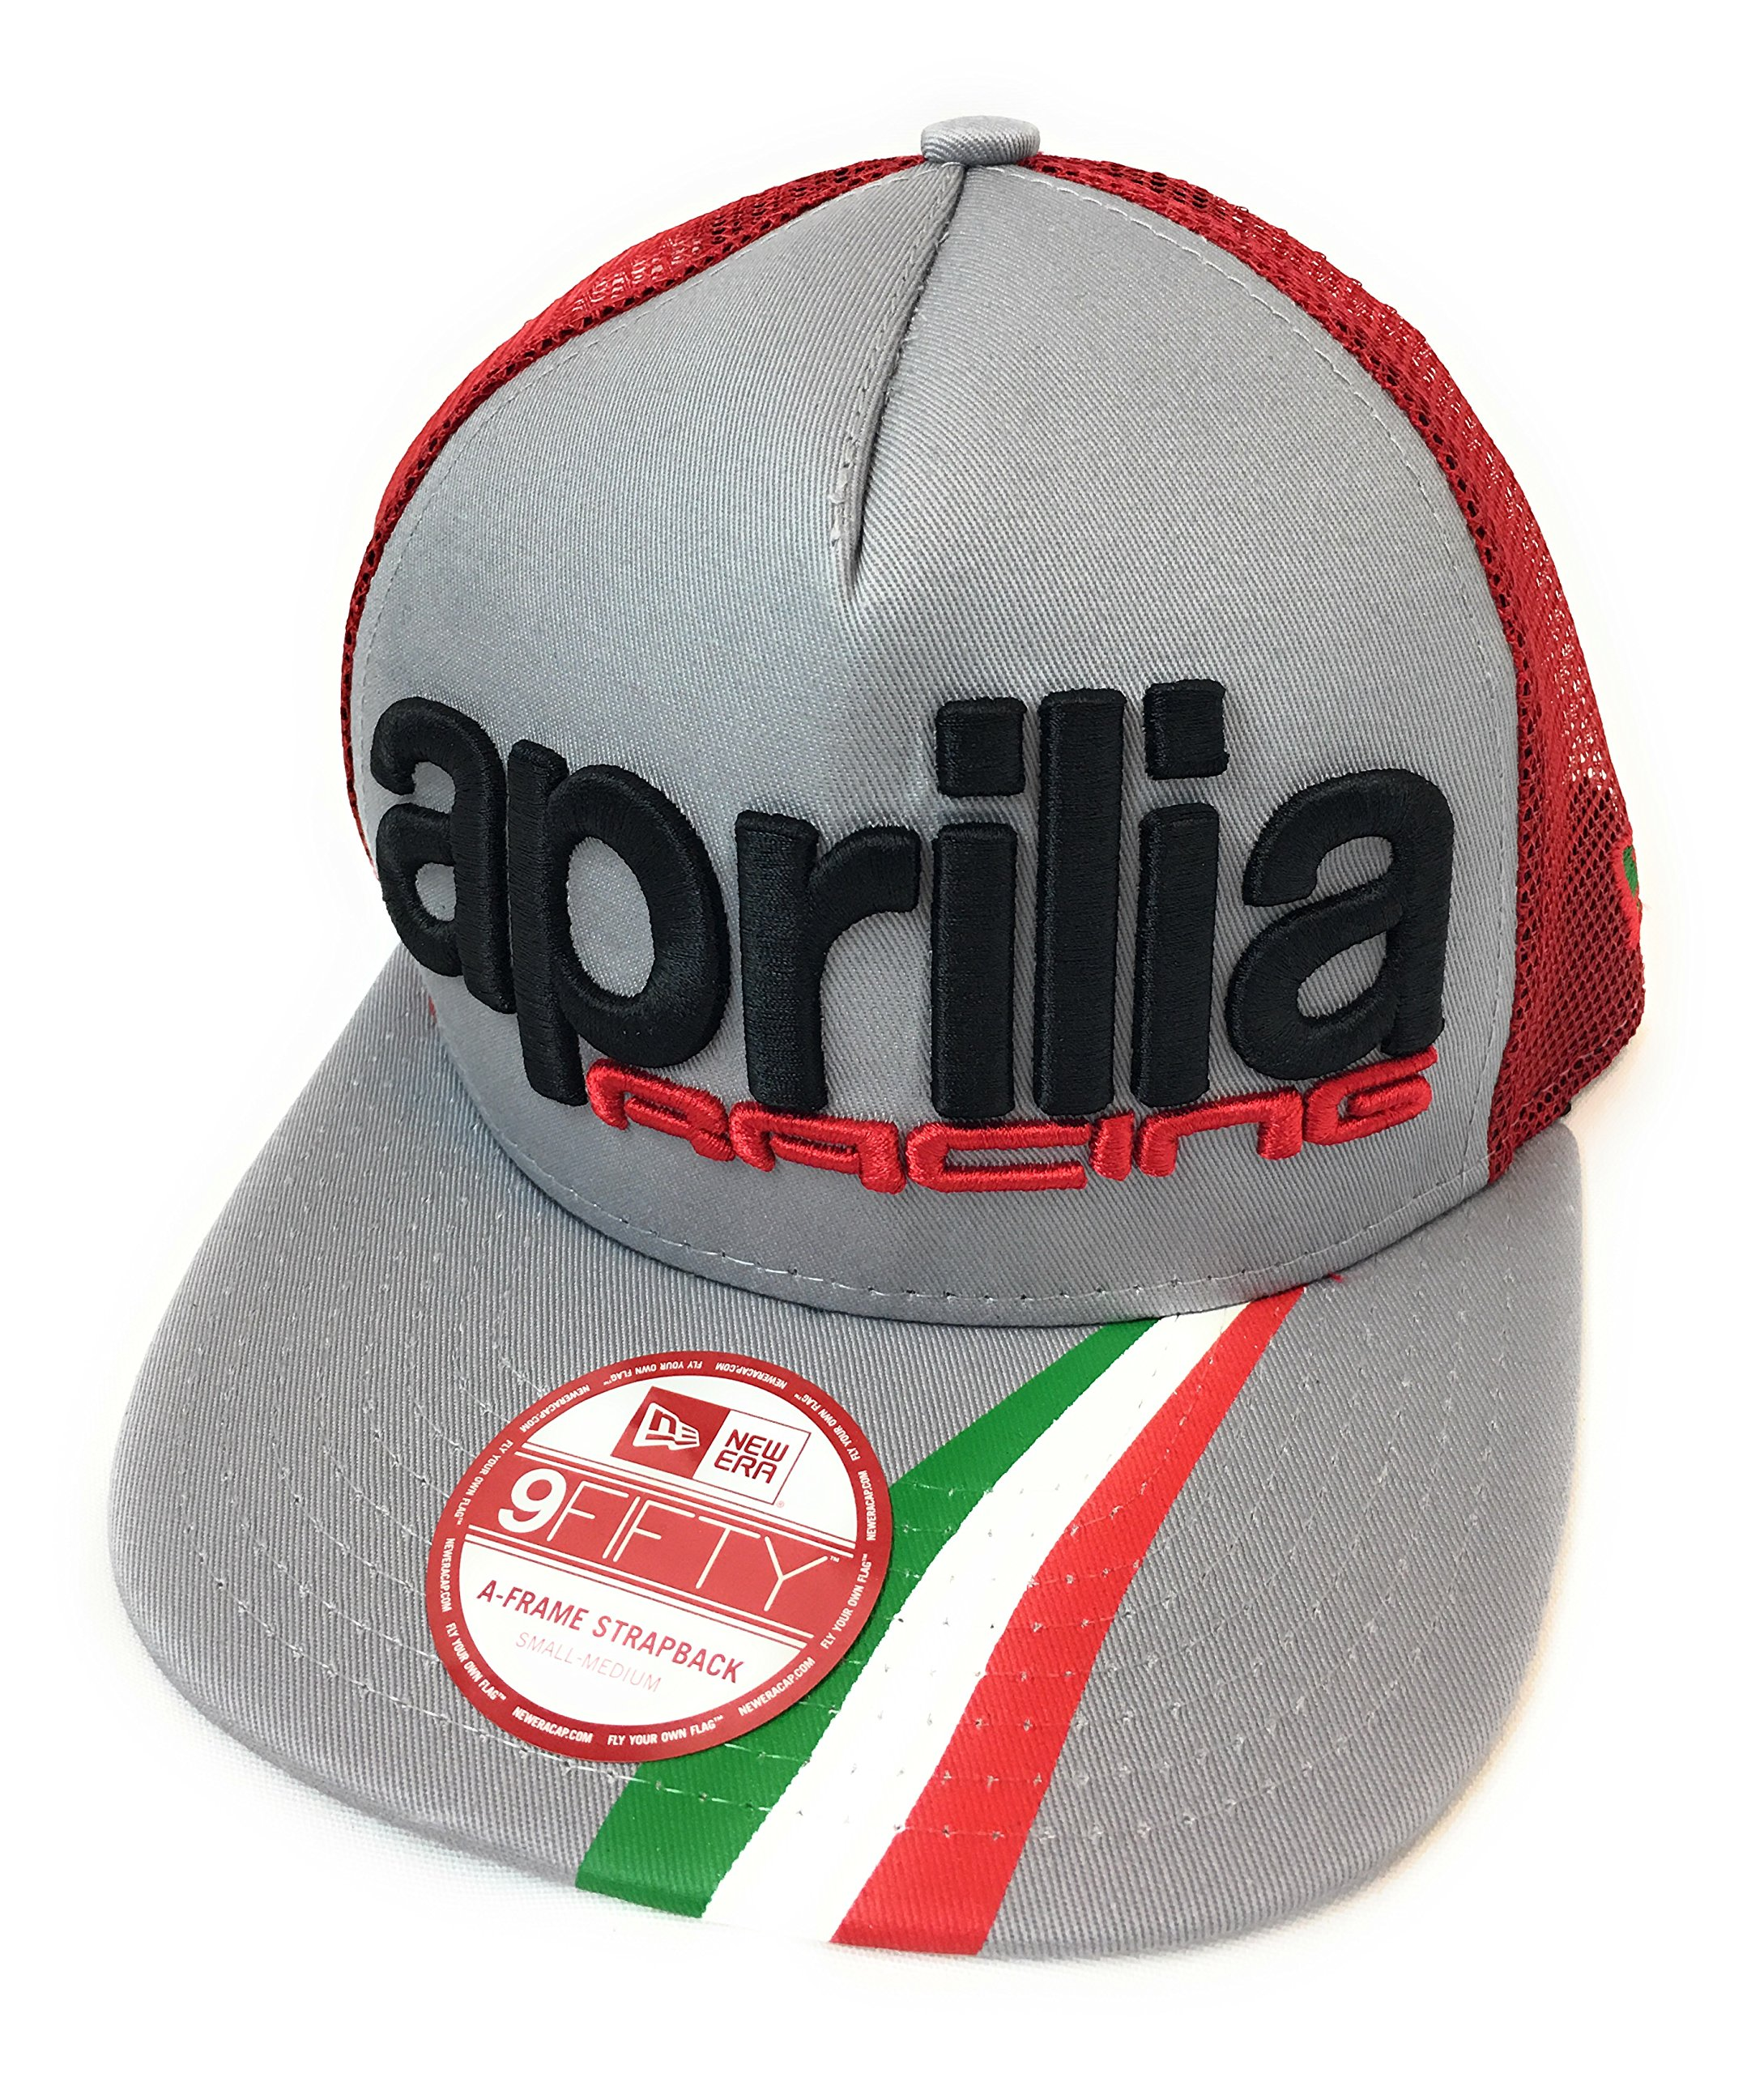 d44d7c4b Aprilia Racing New Era 9FIFTY A-Frame Strapback Hat Small/Medium(606476M002):  Amazon.com: Books